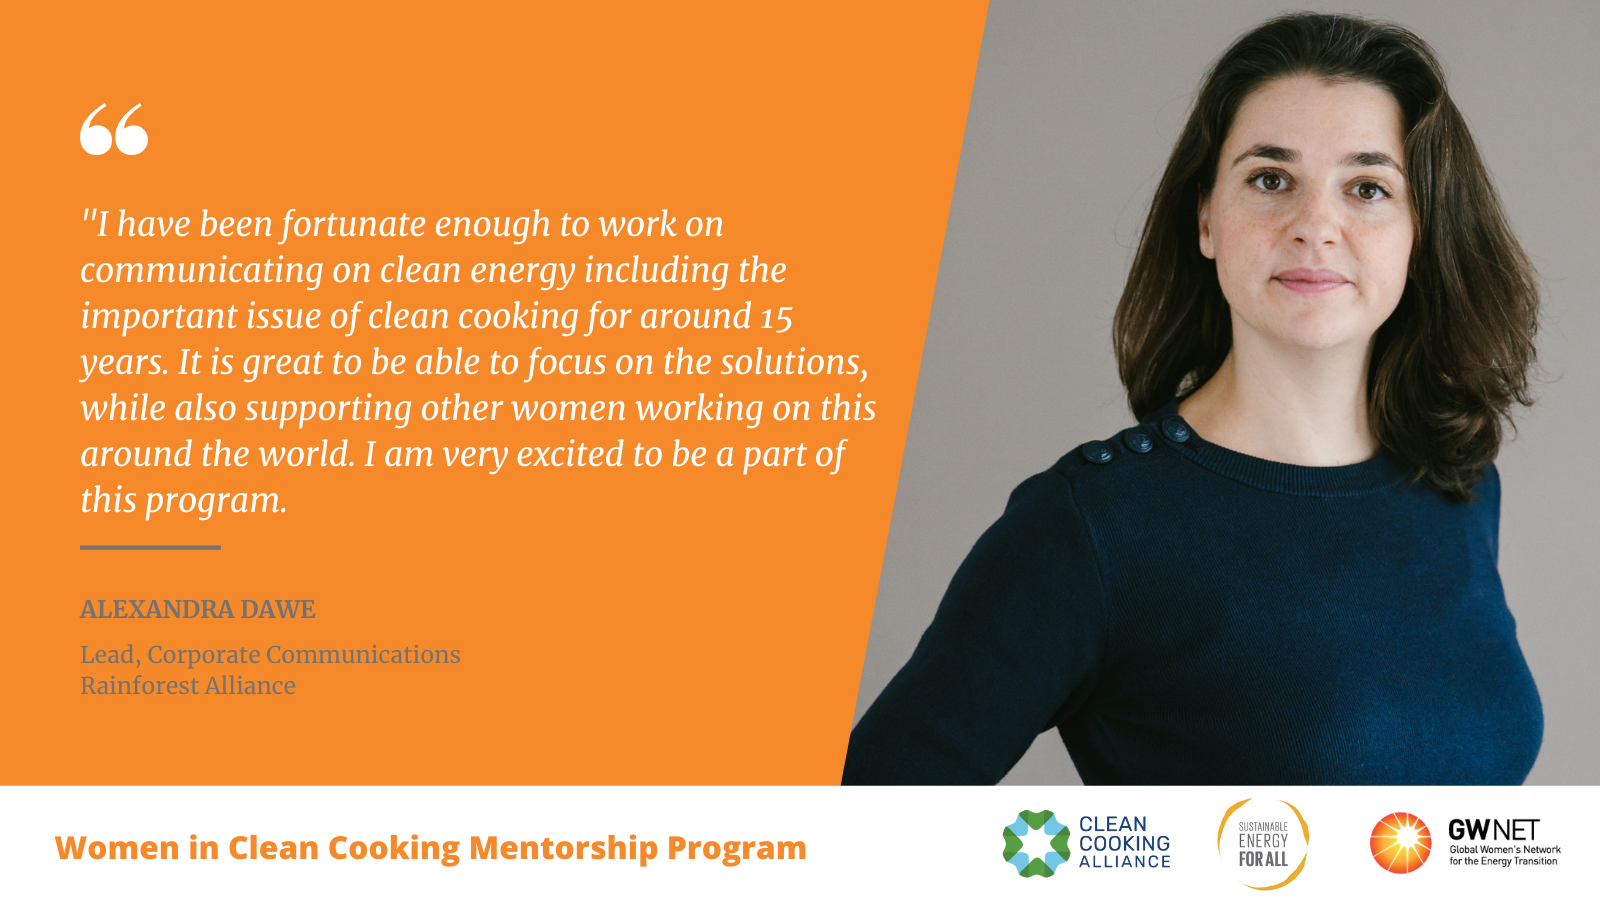 Alexandra Dawe Women in Clean Cooking Mentorship Program